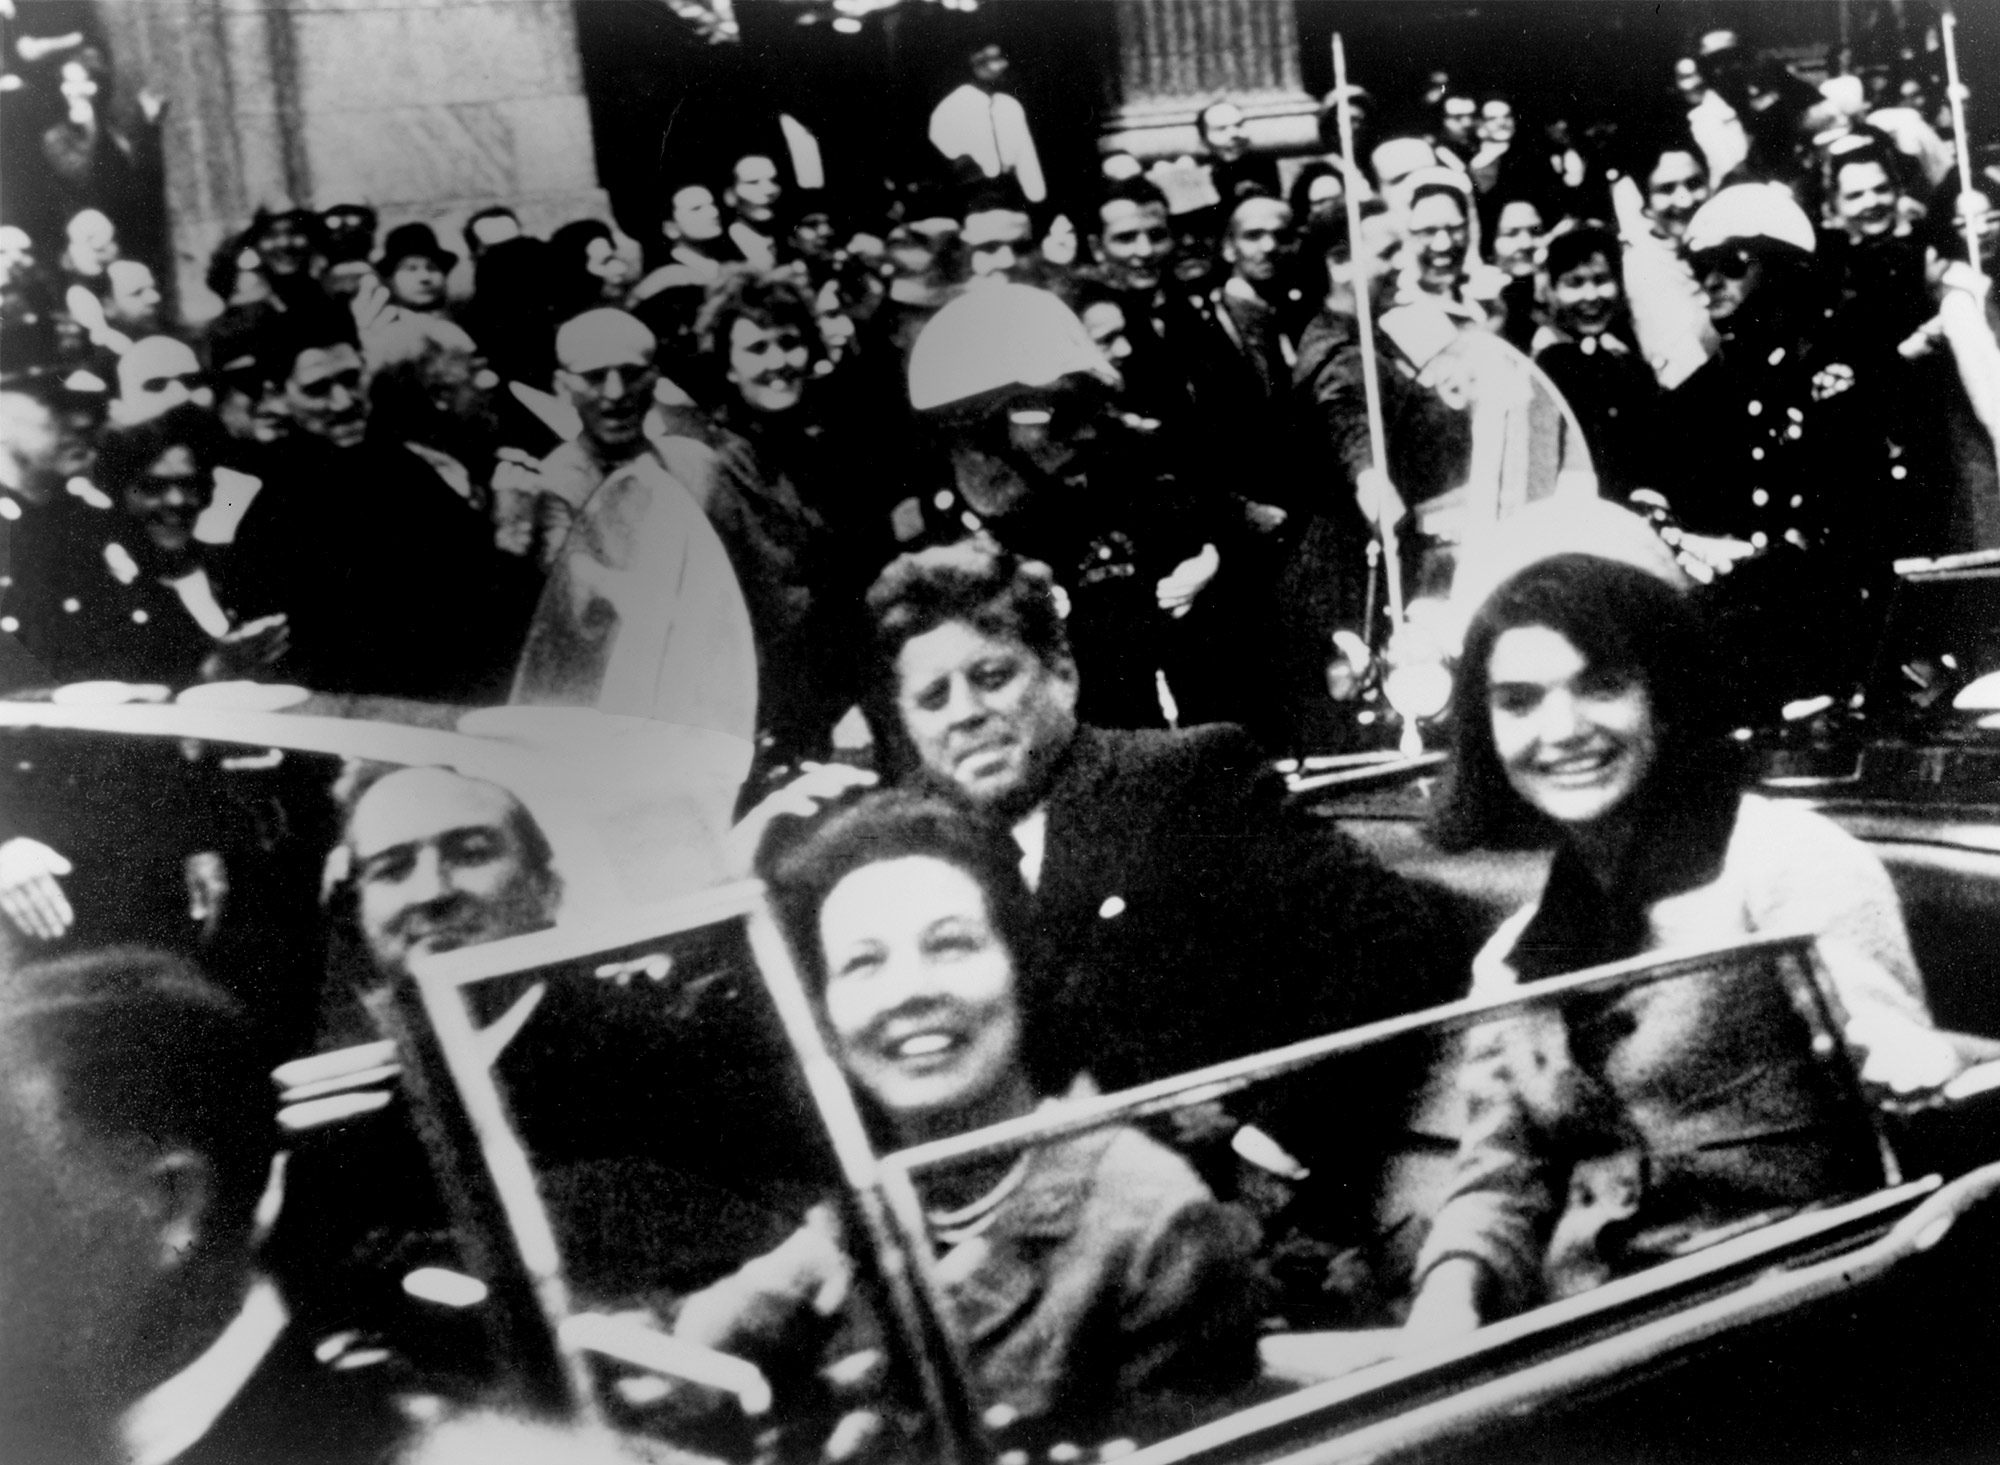 08e2399d24c51 President John Kennedy and Jacqueline Kennedy ride with Texas Gov. John  Connally and Nellie Connally